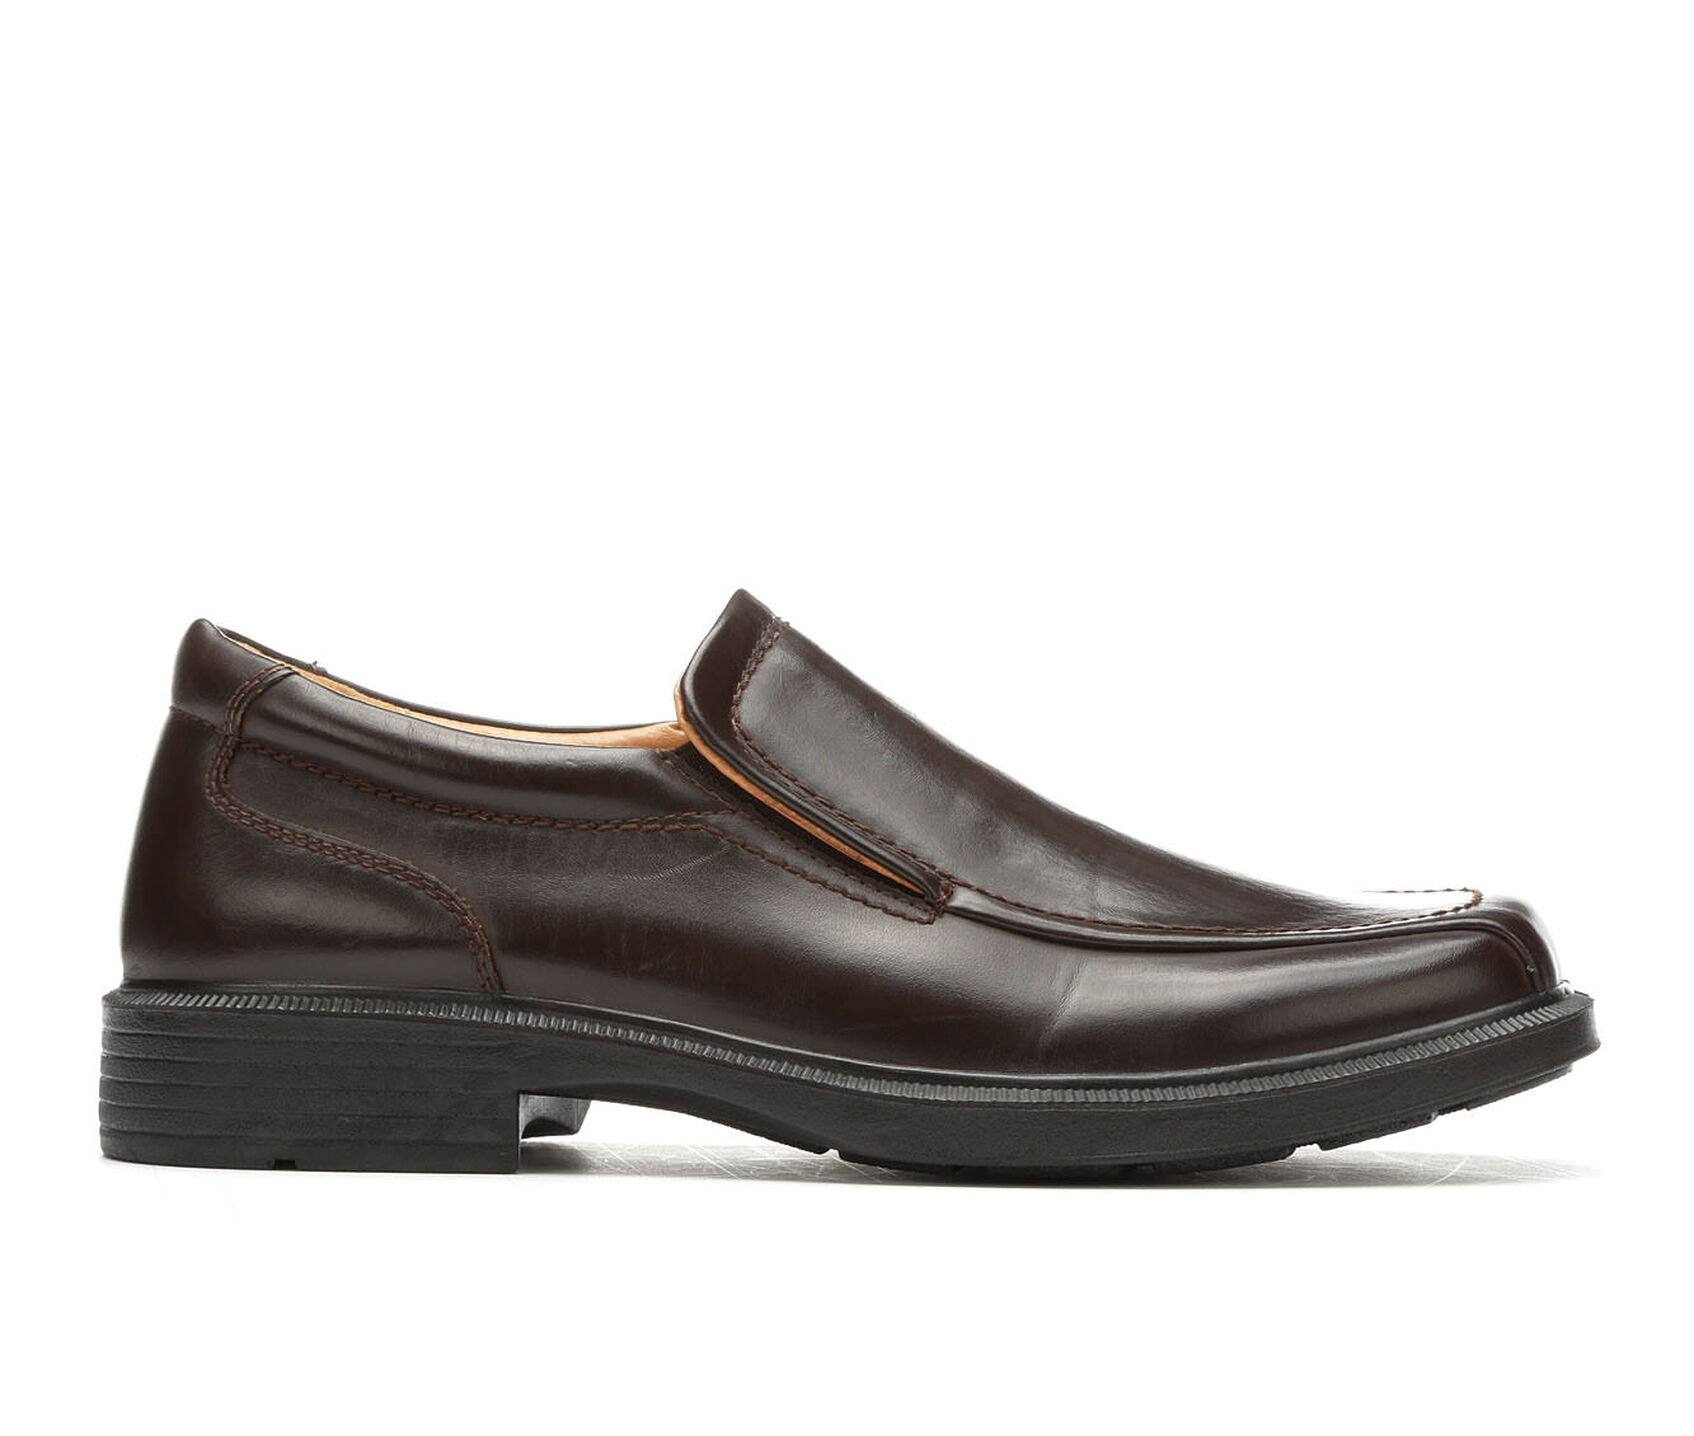 f88841a34516 ... Deer Stags Greenpoint Dress Shoes. Previous